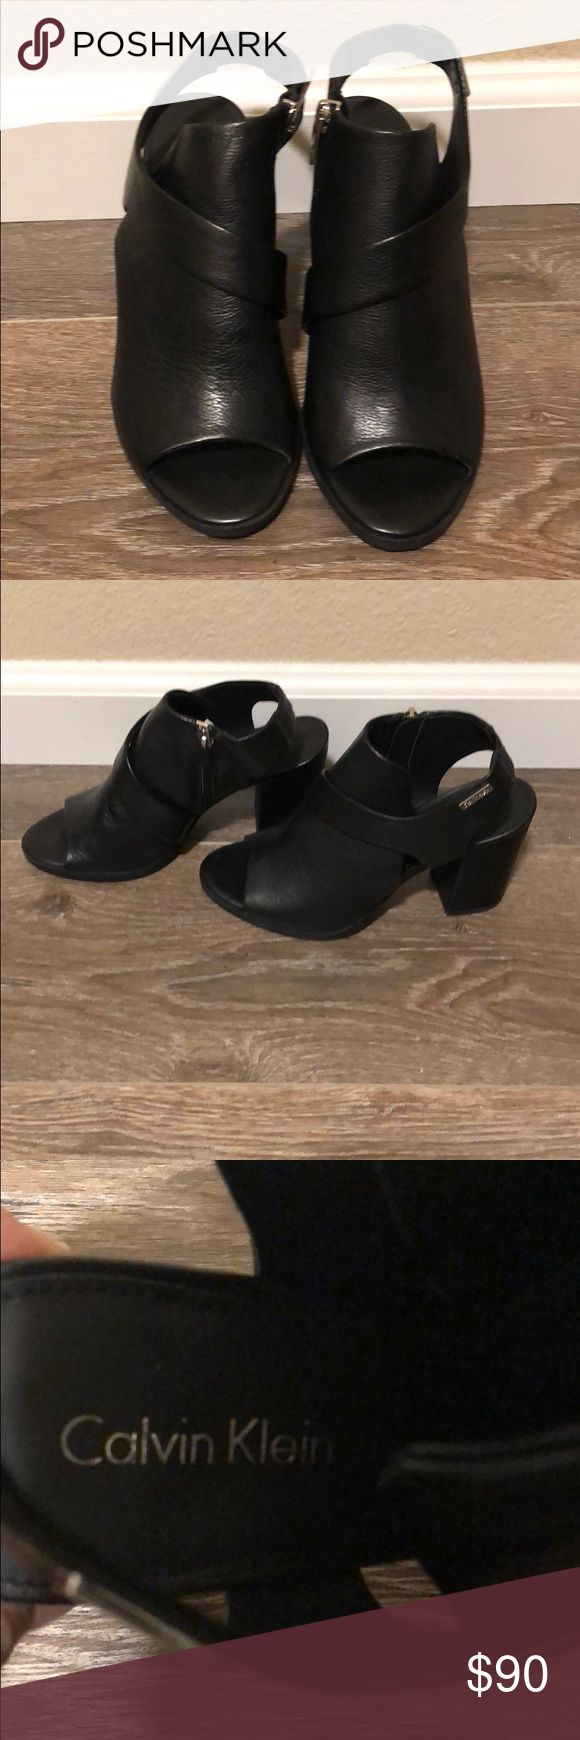 Calvin Klein peep toe black leather booties! Never worn super cute black leather booties for sale! Needs a new home never worn cleaning out my shoe closet! calvin klein Shoes Ankle Boots & Booties